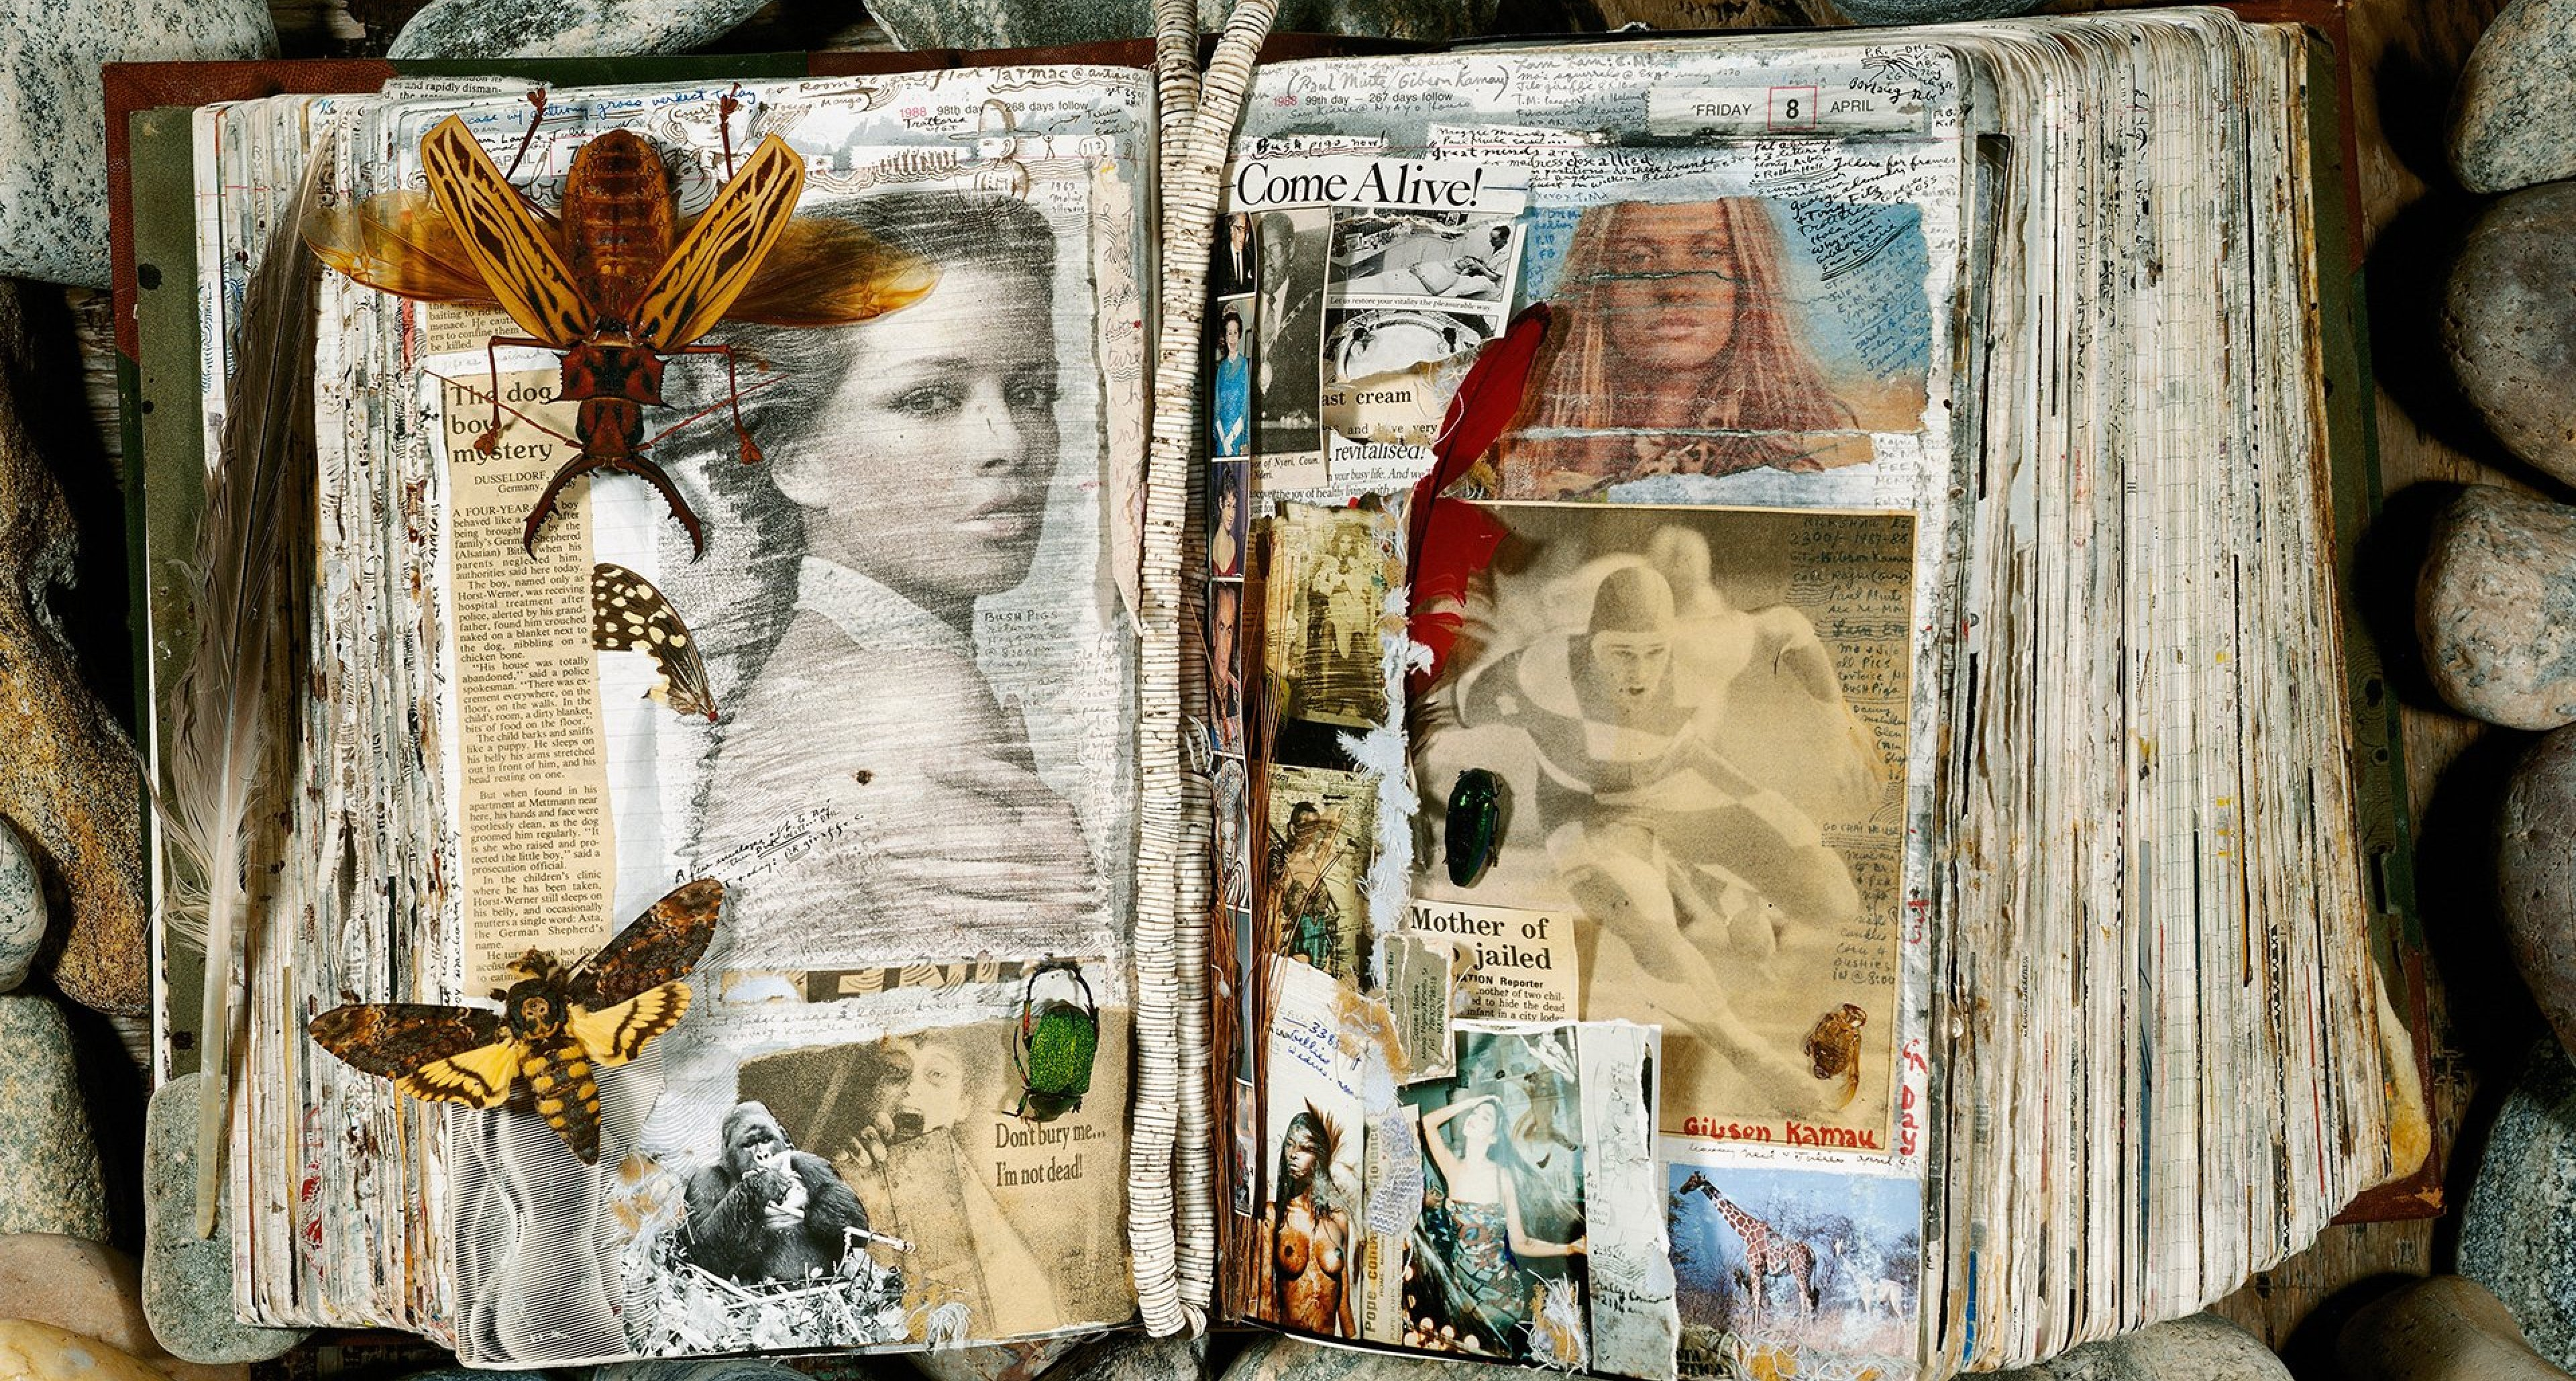 Astrid Heeren and Veruschka, April 7–8, 1988 © 2020 Peter Beard